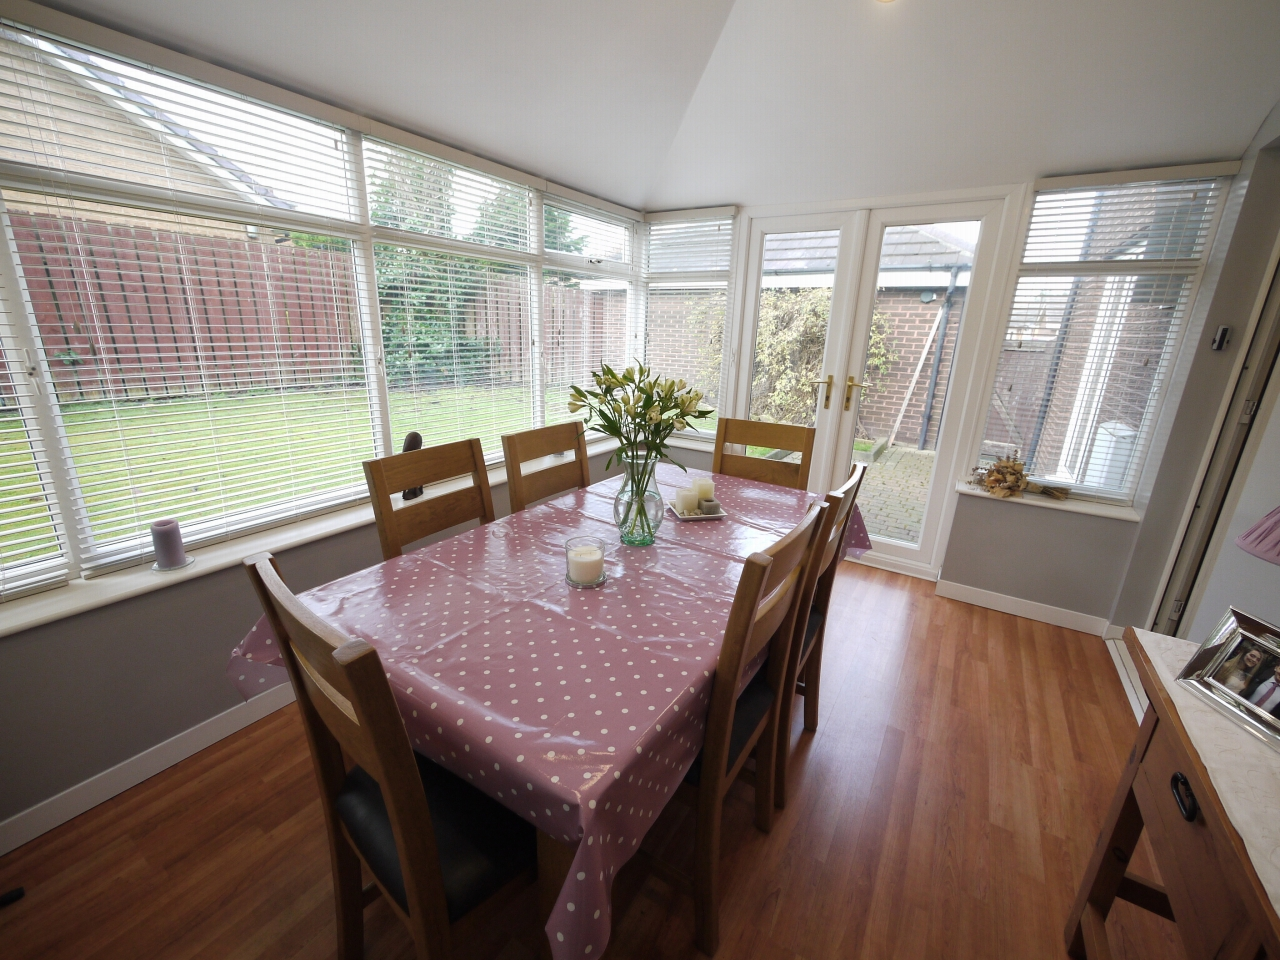 4 bedroom detached house For Sale in Brighouse - Photograph 10.